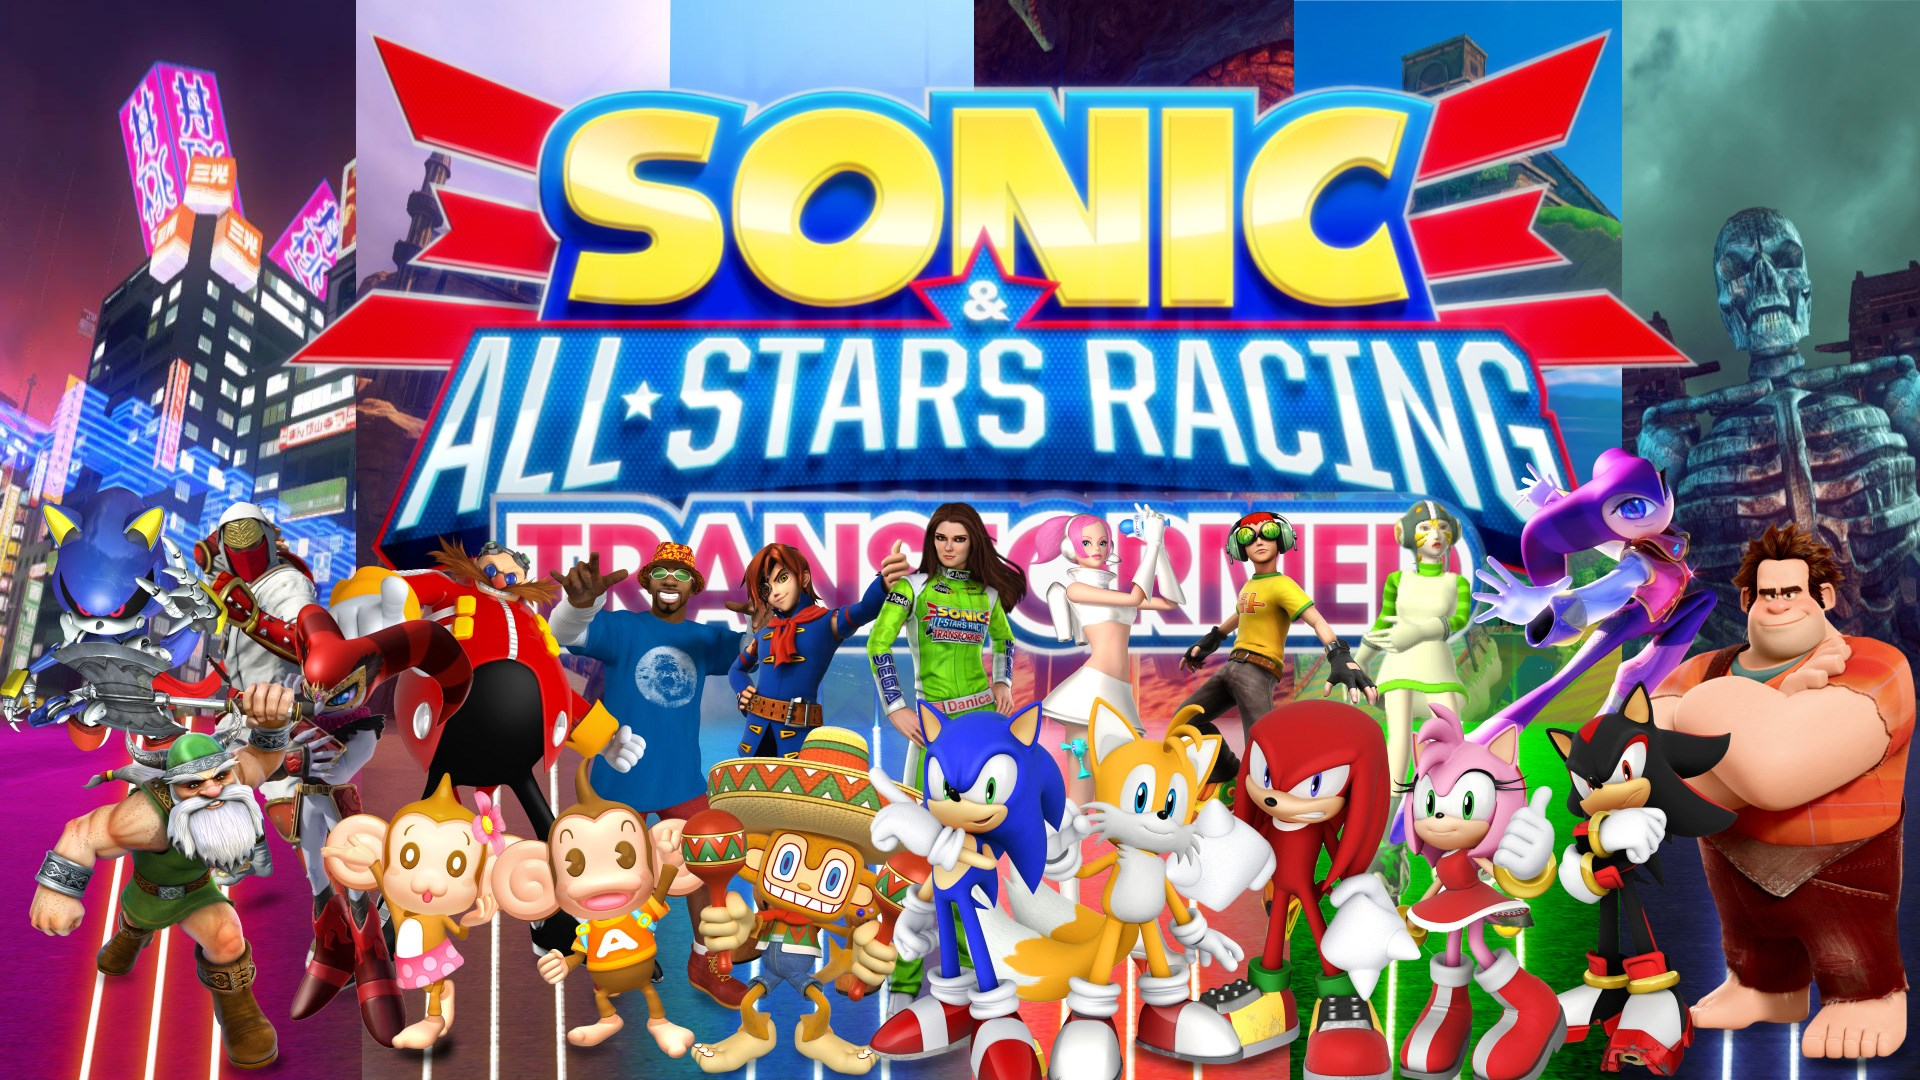 1920x1080-Image-for-Desktop-sonic-all-stars-racing-transformed-wallpaper-wp360833